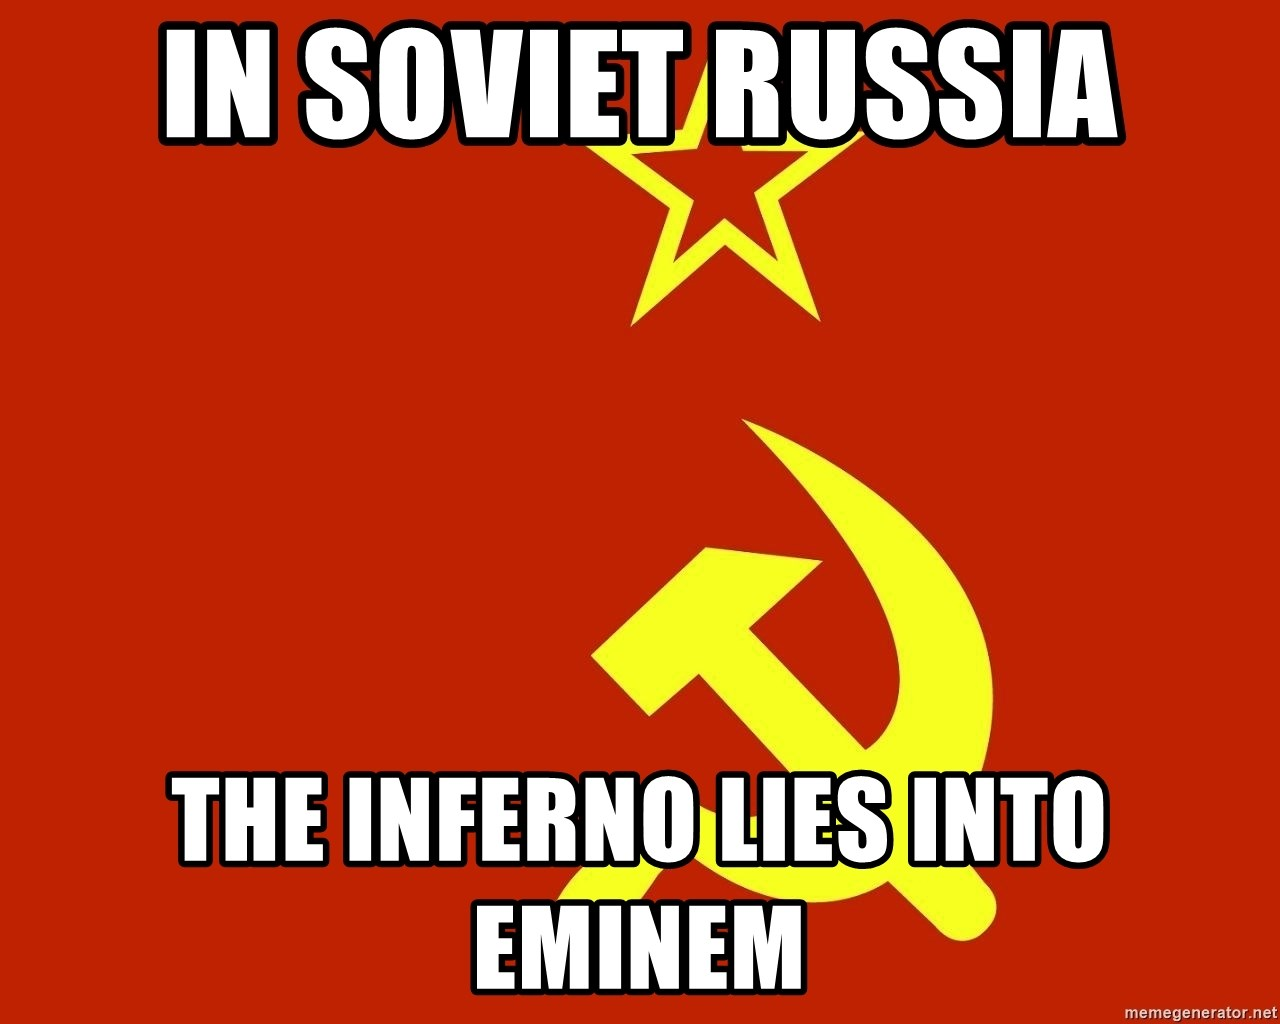 In Soviet Russia - in soviet russia the inferno lies into eminem